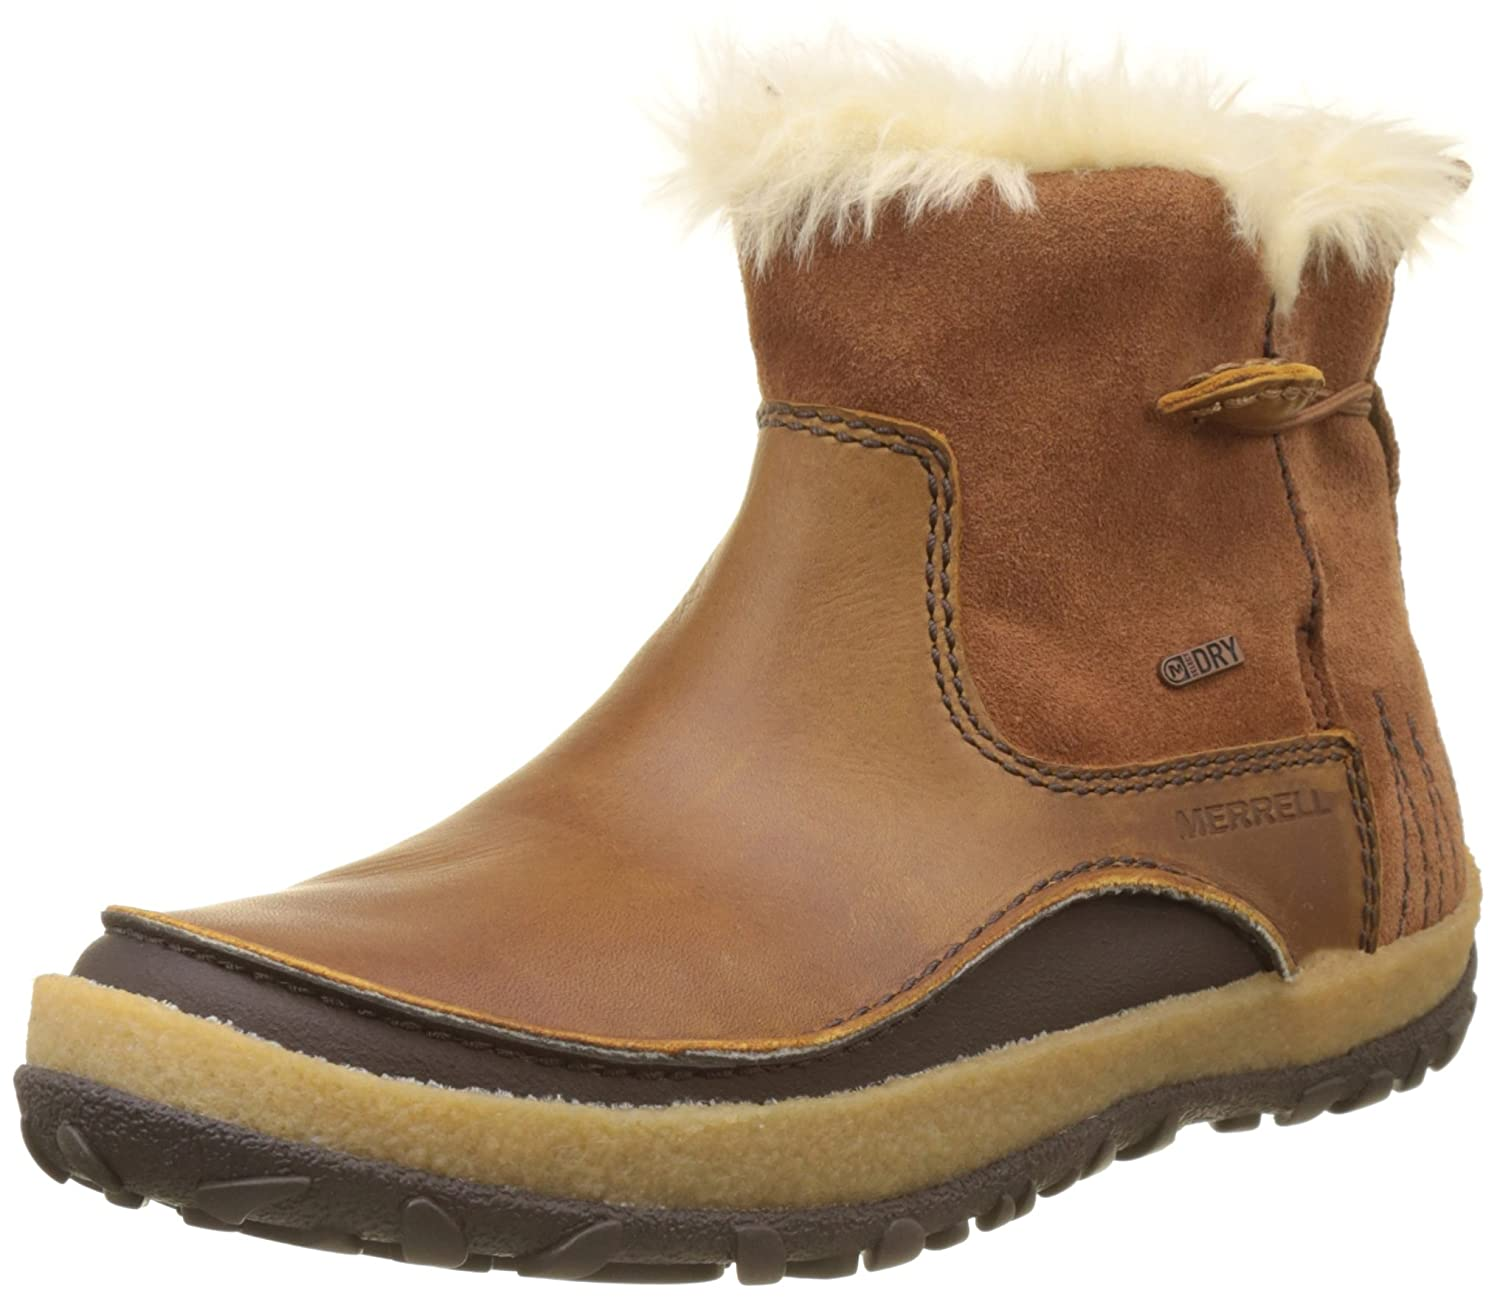 Merrell Women's Tremblant Pull on Polar Waterproof Snow Boot B01N36ZQ1Y 9 B(M) US|Merrell Oak